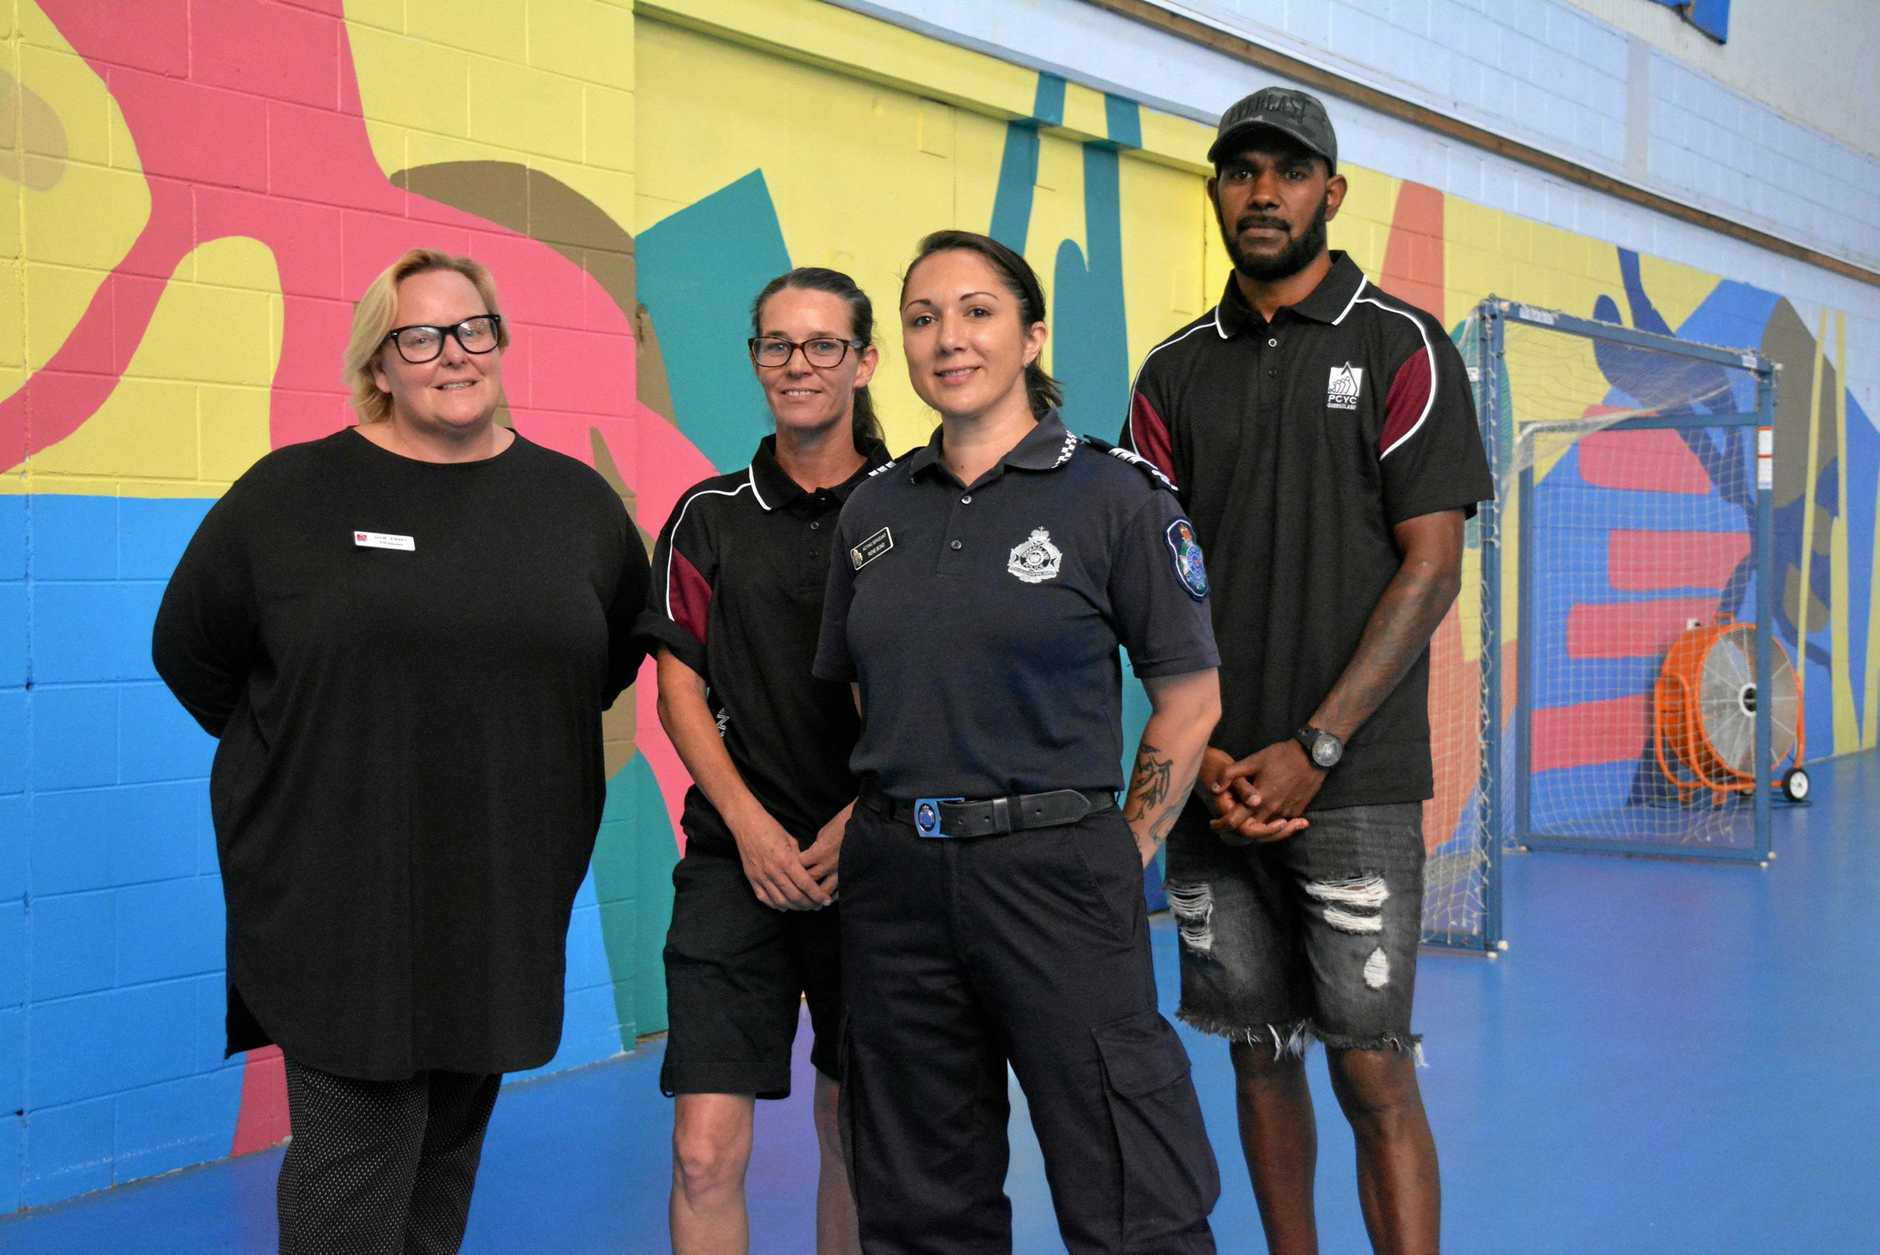 RESTART: Julie Ewart, Julie Benson, Sgt Rene Bond and Alex Speedy will be working with the students in the Restart program at the South Burnett PCYC next year.